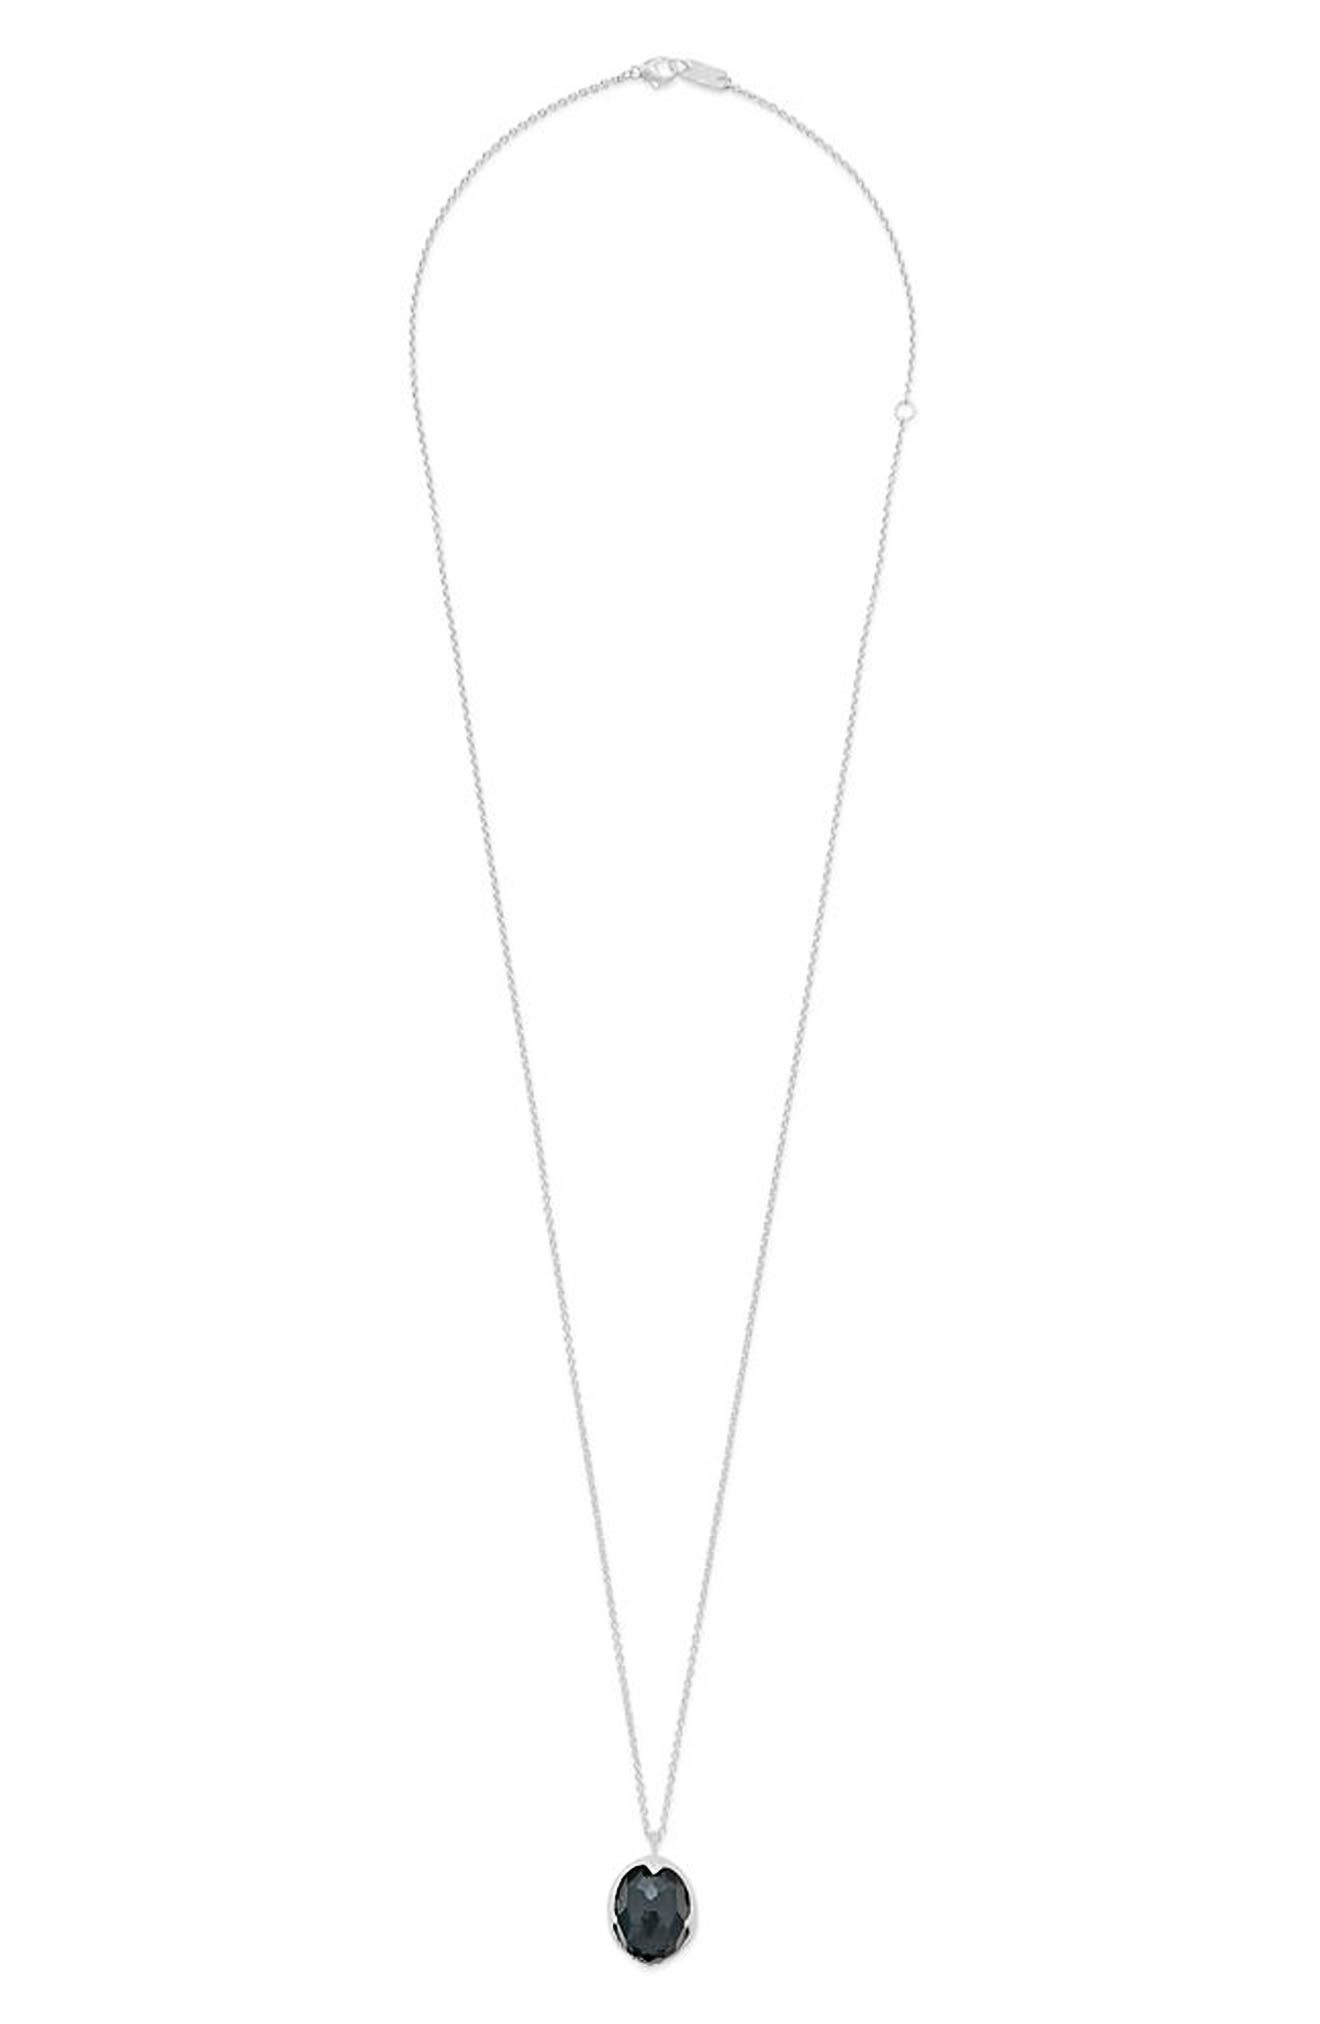 Rock Candy Long Pendant Necklace,                         Main,                         color, Silver